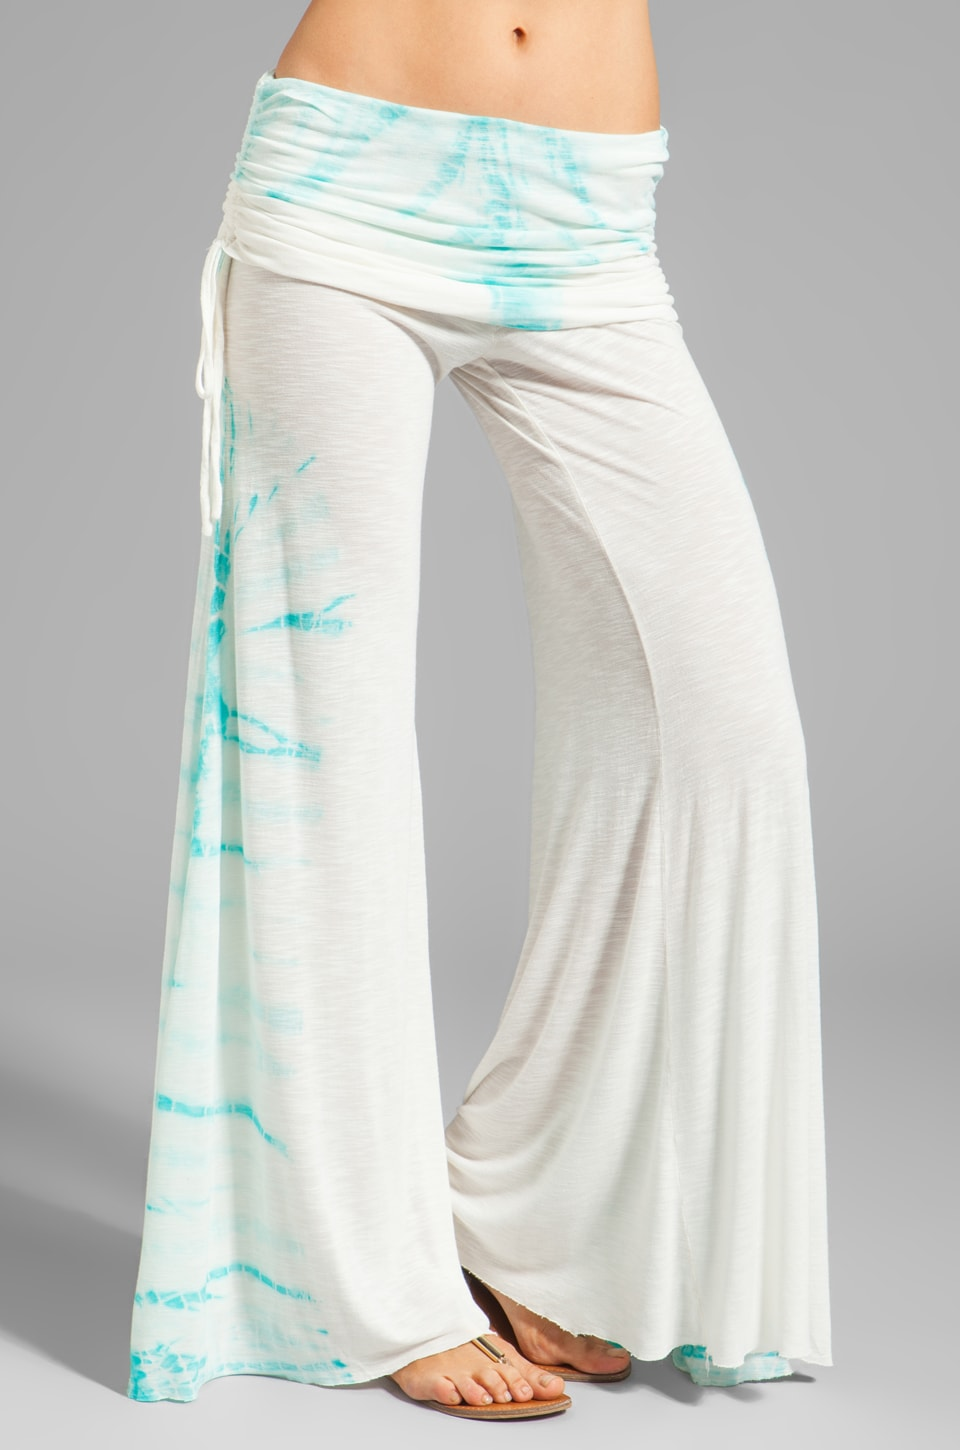 Young, Fabulous & Broke Sierra Carnivale Wash Pant in Crystal